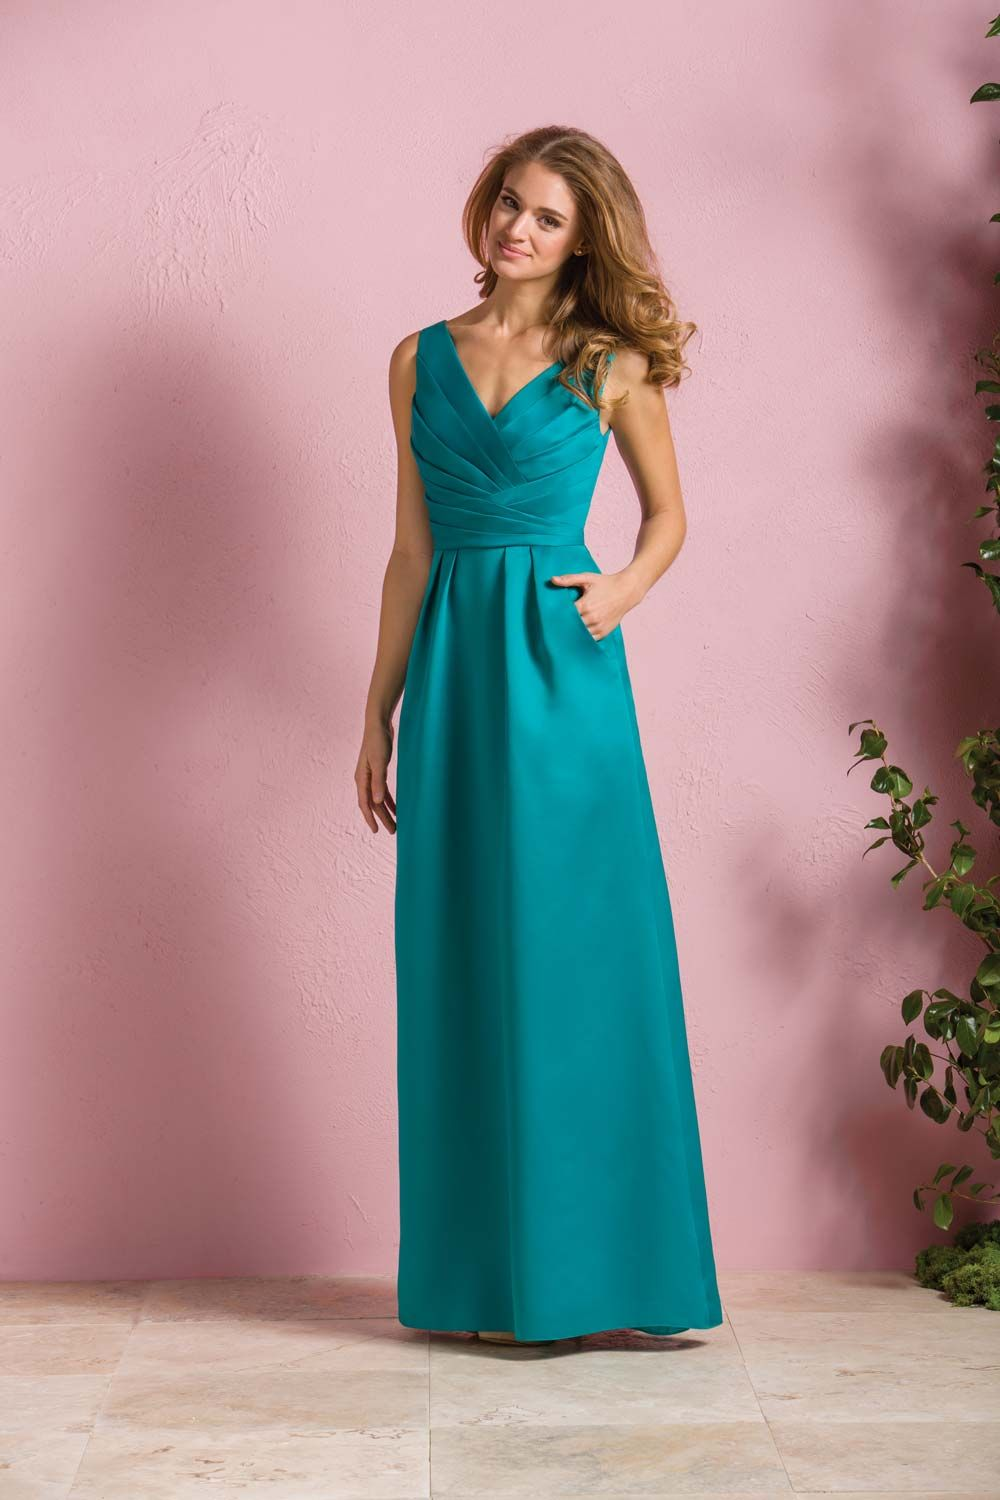 Teal Bridesmaid Dresses: 15 of Our Favourite Styles | Caballeros y Damas